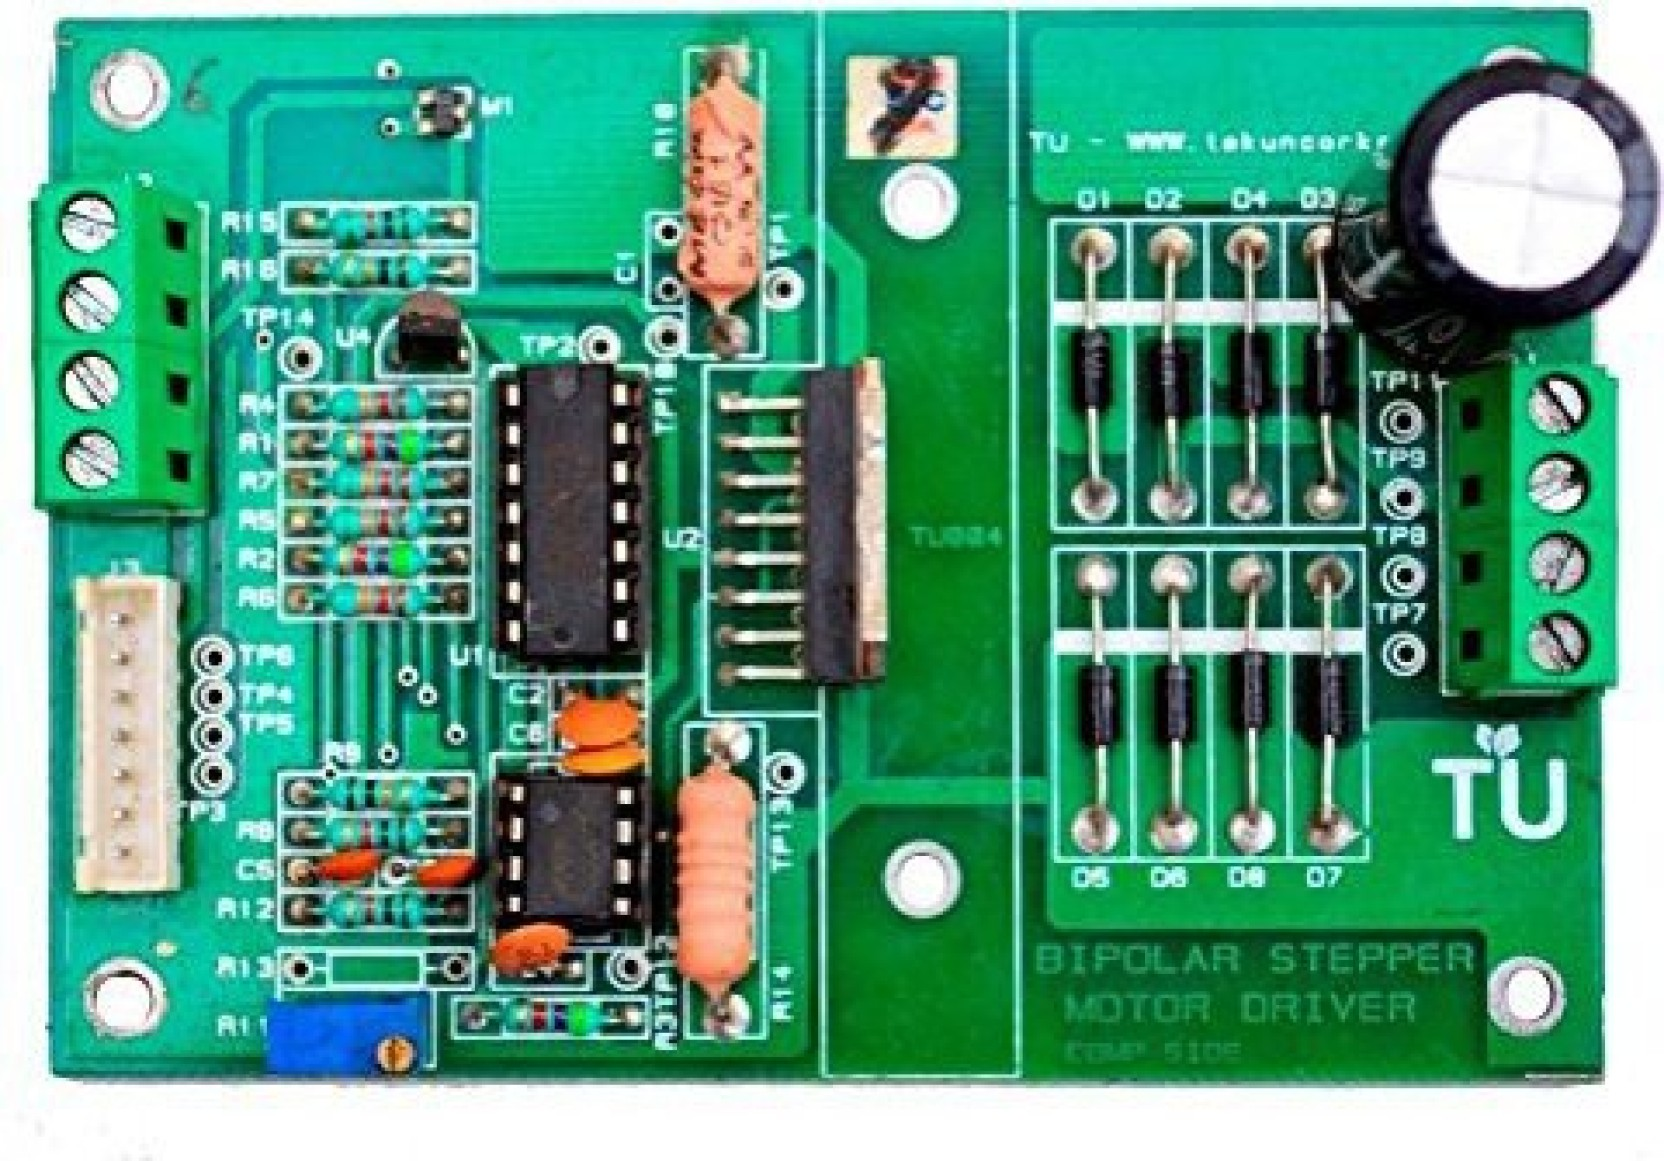 Generic Technology Uncorked 6 24v 25a 4 Wire Bipolar Stepper Motor Drive Circuitdb Driver Kit On Offer